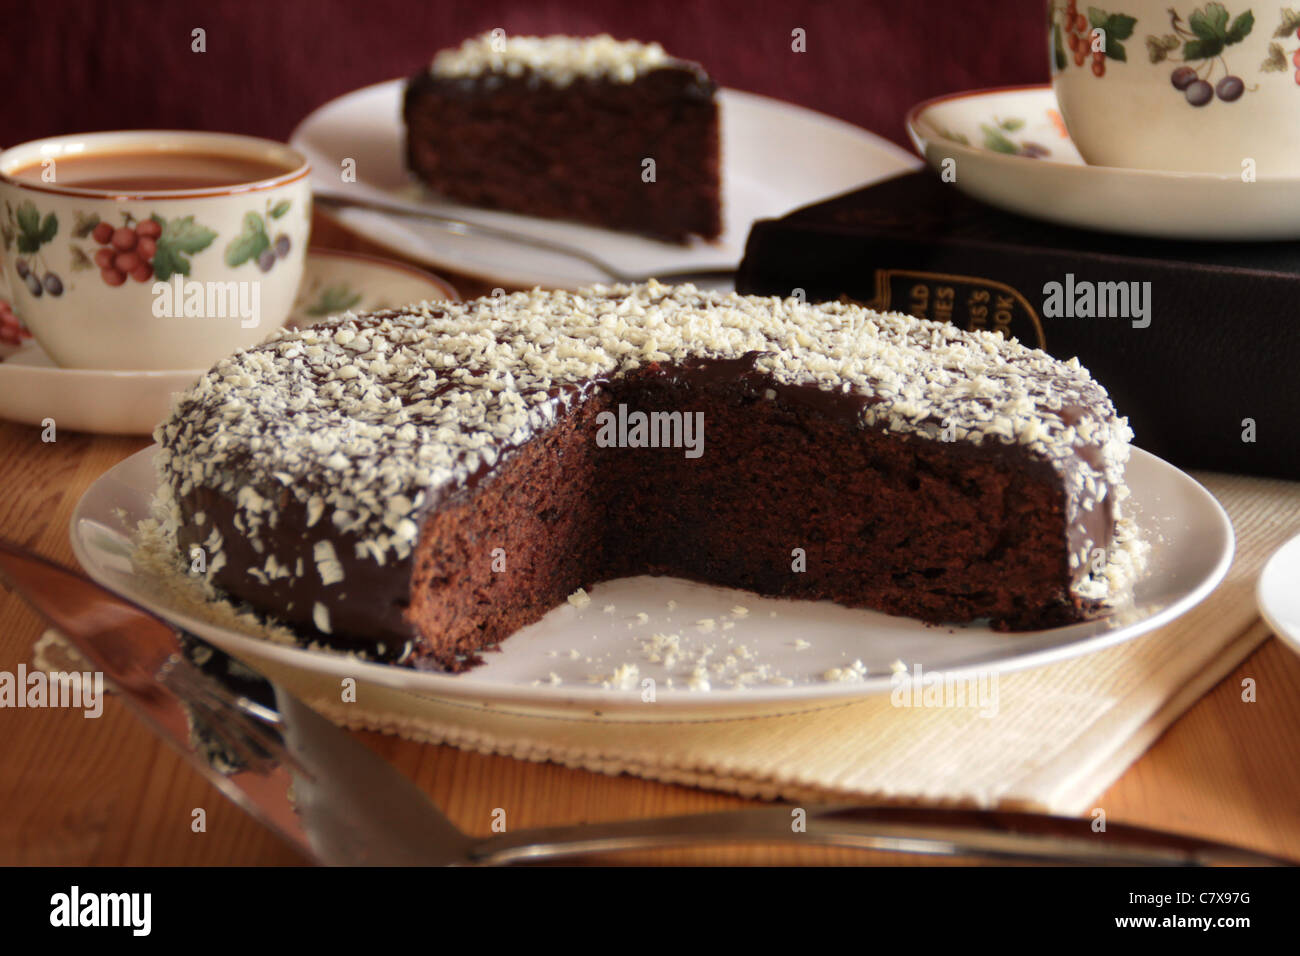 Rich dark chocolate cake on a porcelain plate - Stock Image